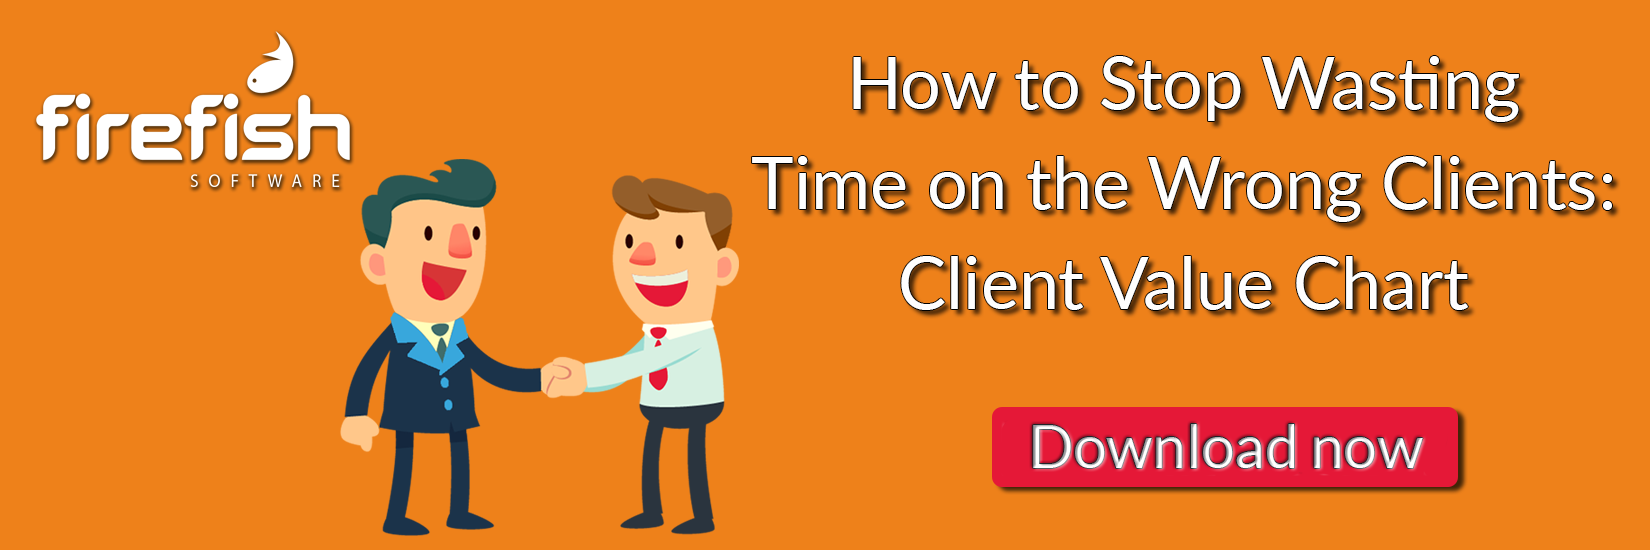 How to Stop Wasting Time on the Wrong Clients